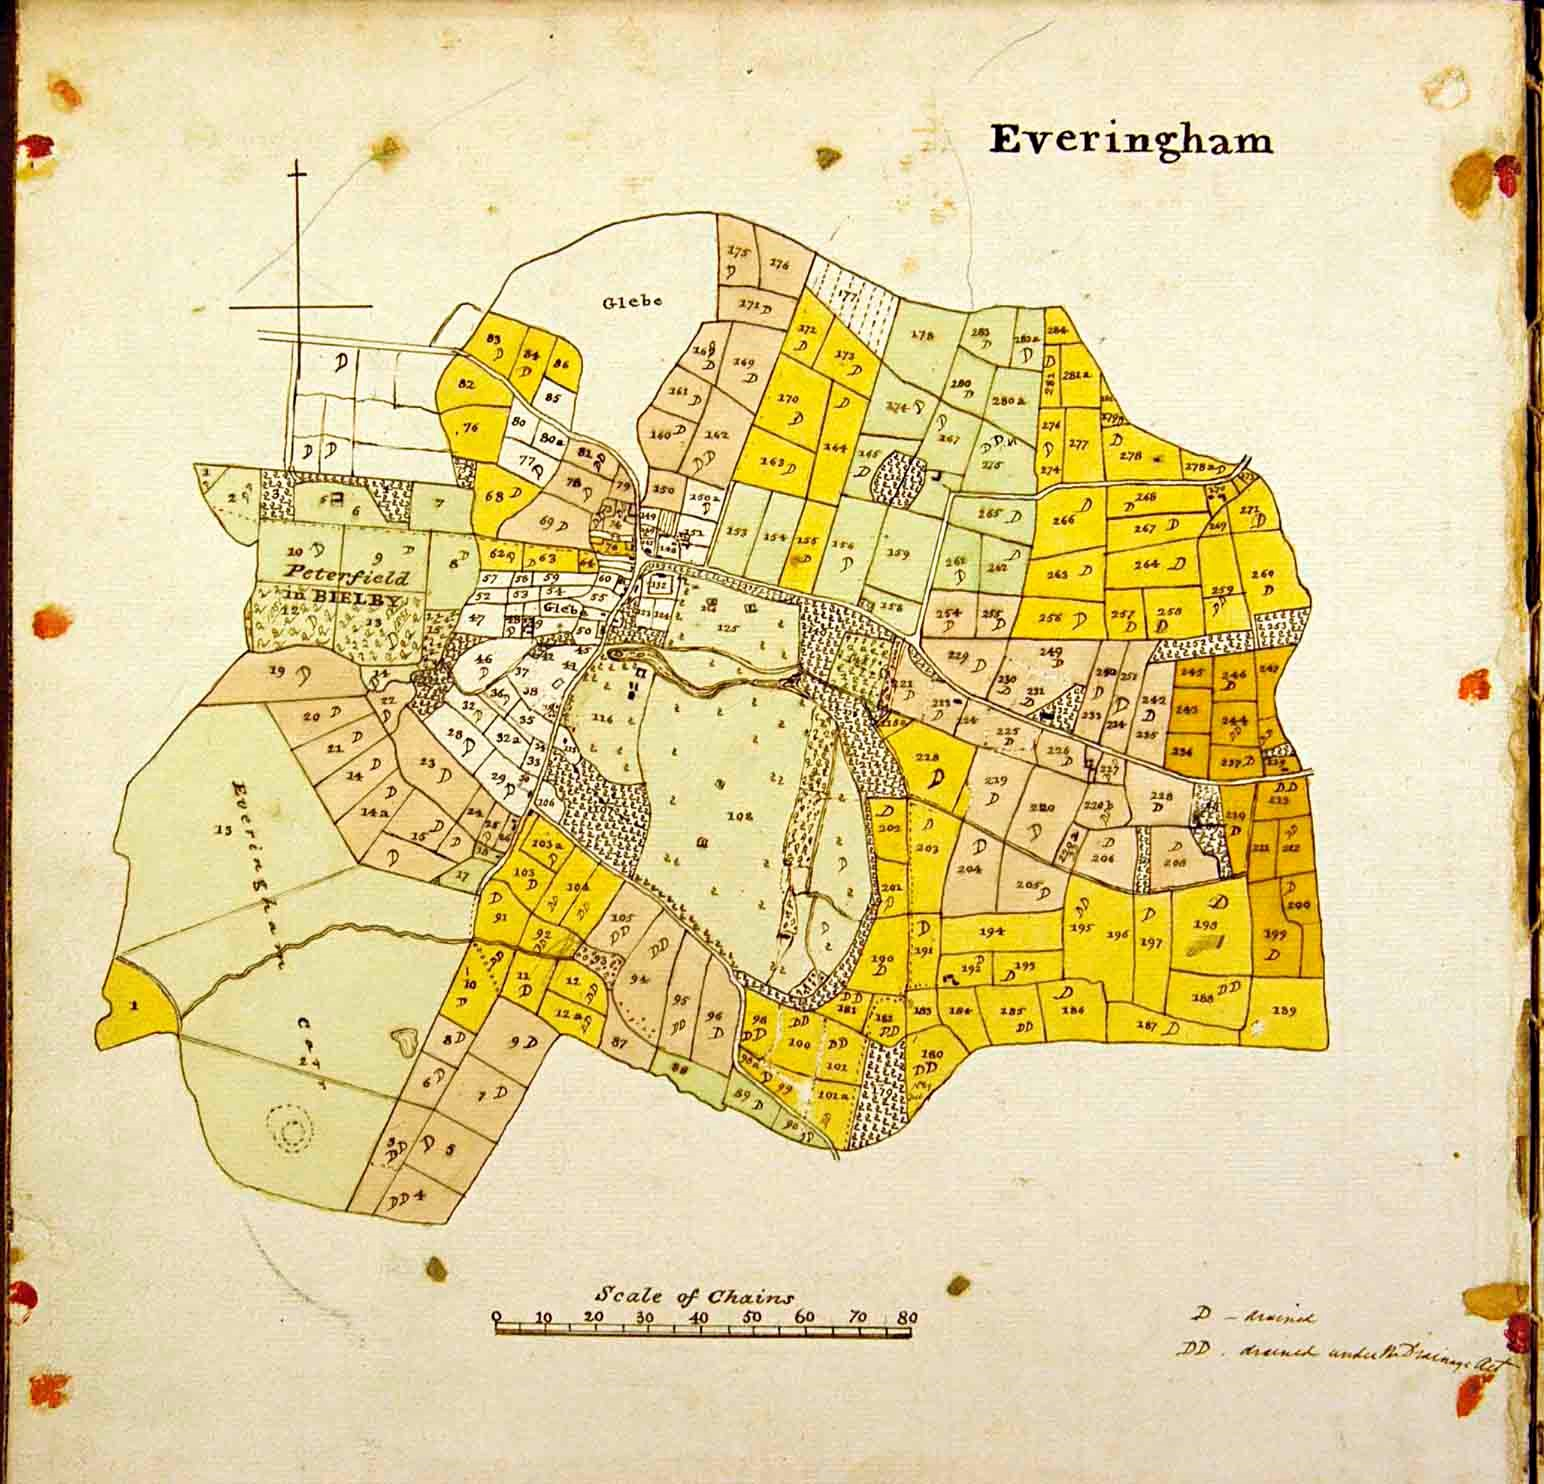 Map of Everingham